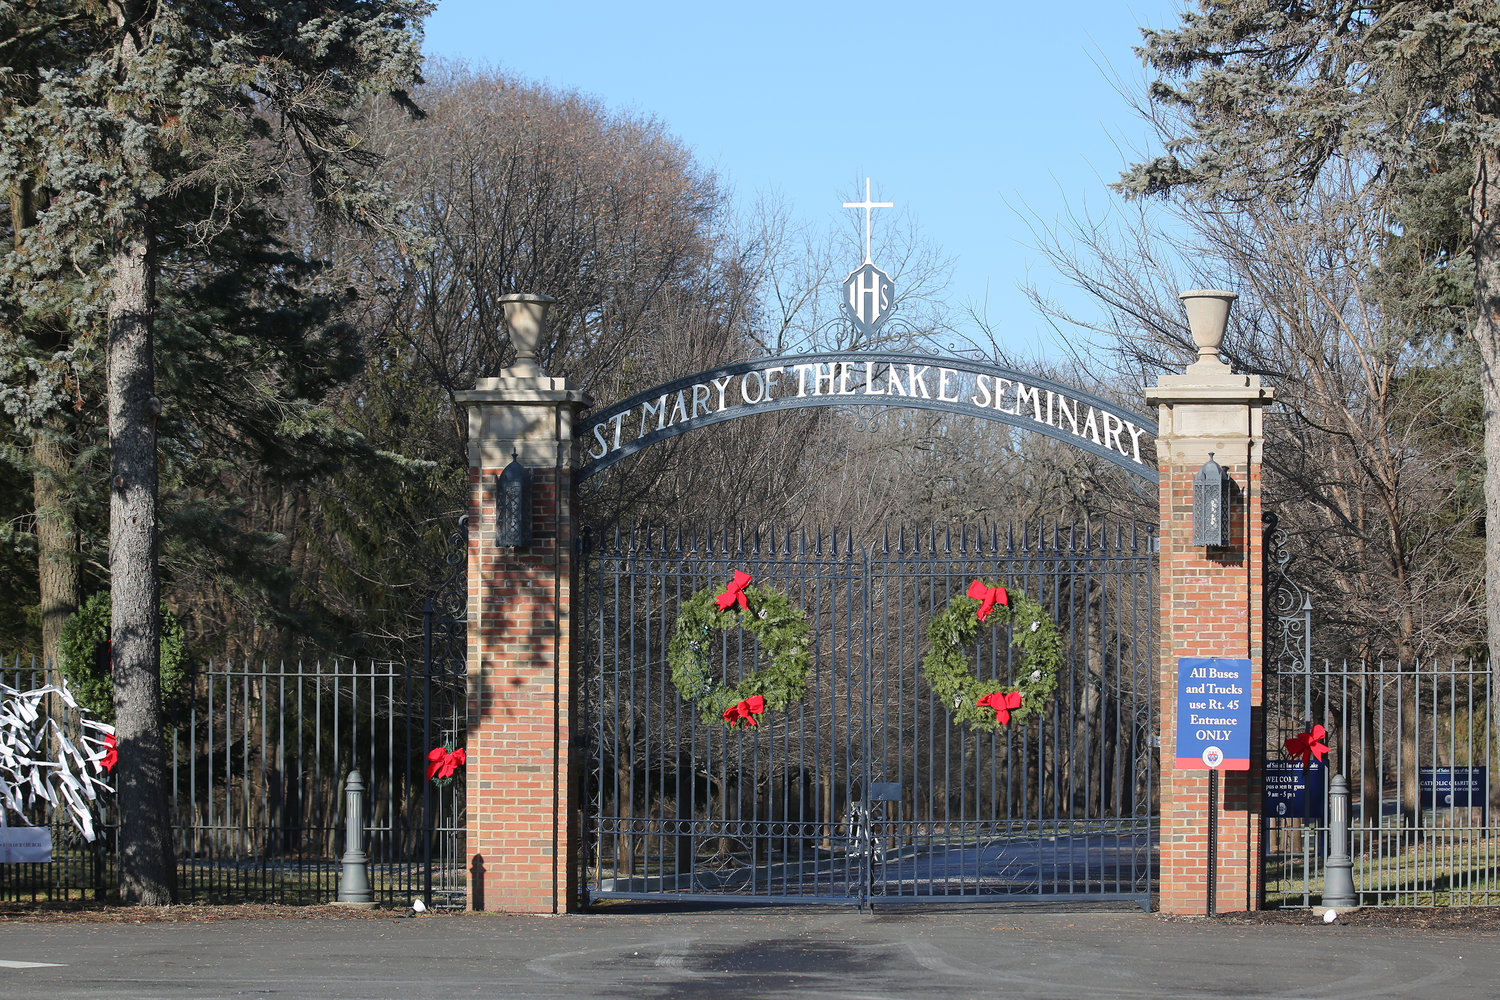 The normally open gate at the entrance to Mundelein Seminary is seen locked Jan. 3 at the University of St. Mary of the Lake in Illinois, near Chicago. The U.S. bishops are on retreat Jan. 2-8 at the seminary, suggested by Pope Francis in September, which comes as the bishops work to rebuild trust among the faithful as questions continue to revolve around their handling of clergy sex abuse.